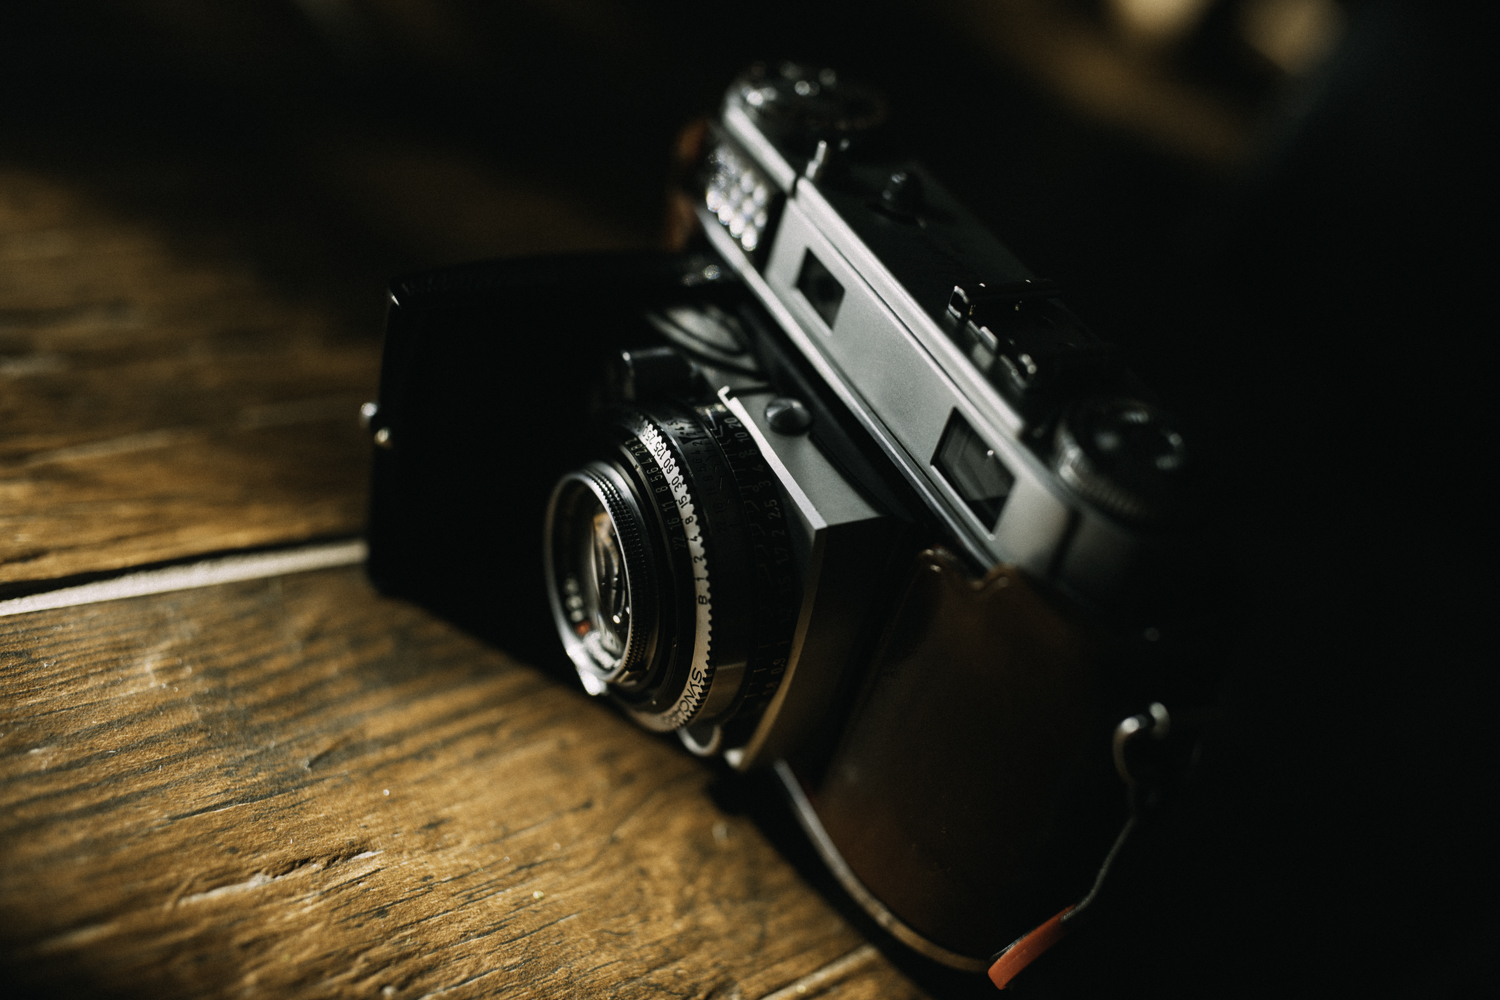 The retina is a beautiful camera. Even 64 years after it was built, this refined tank of a camera still stands up to the daily grind.